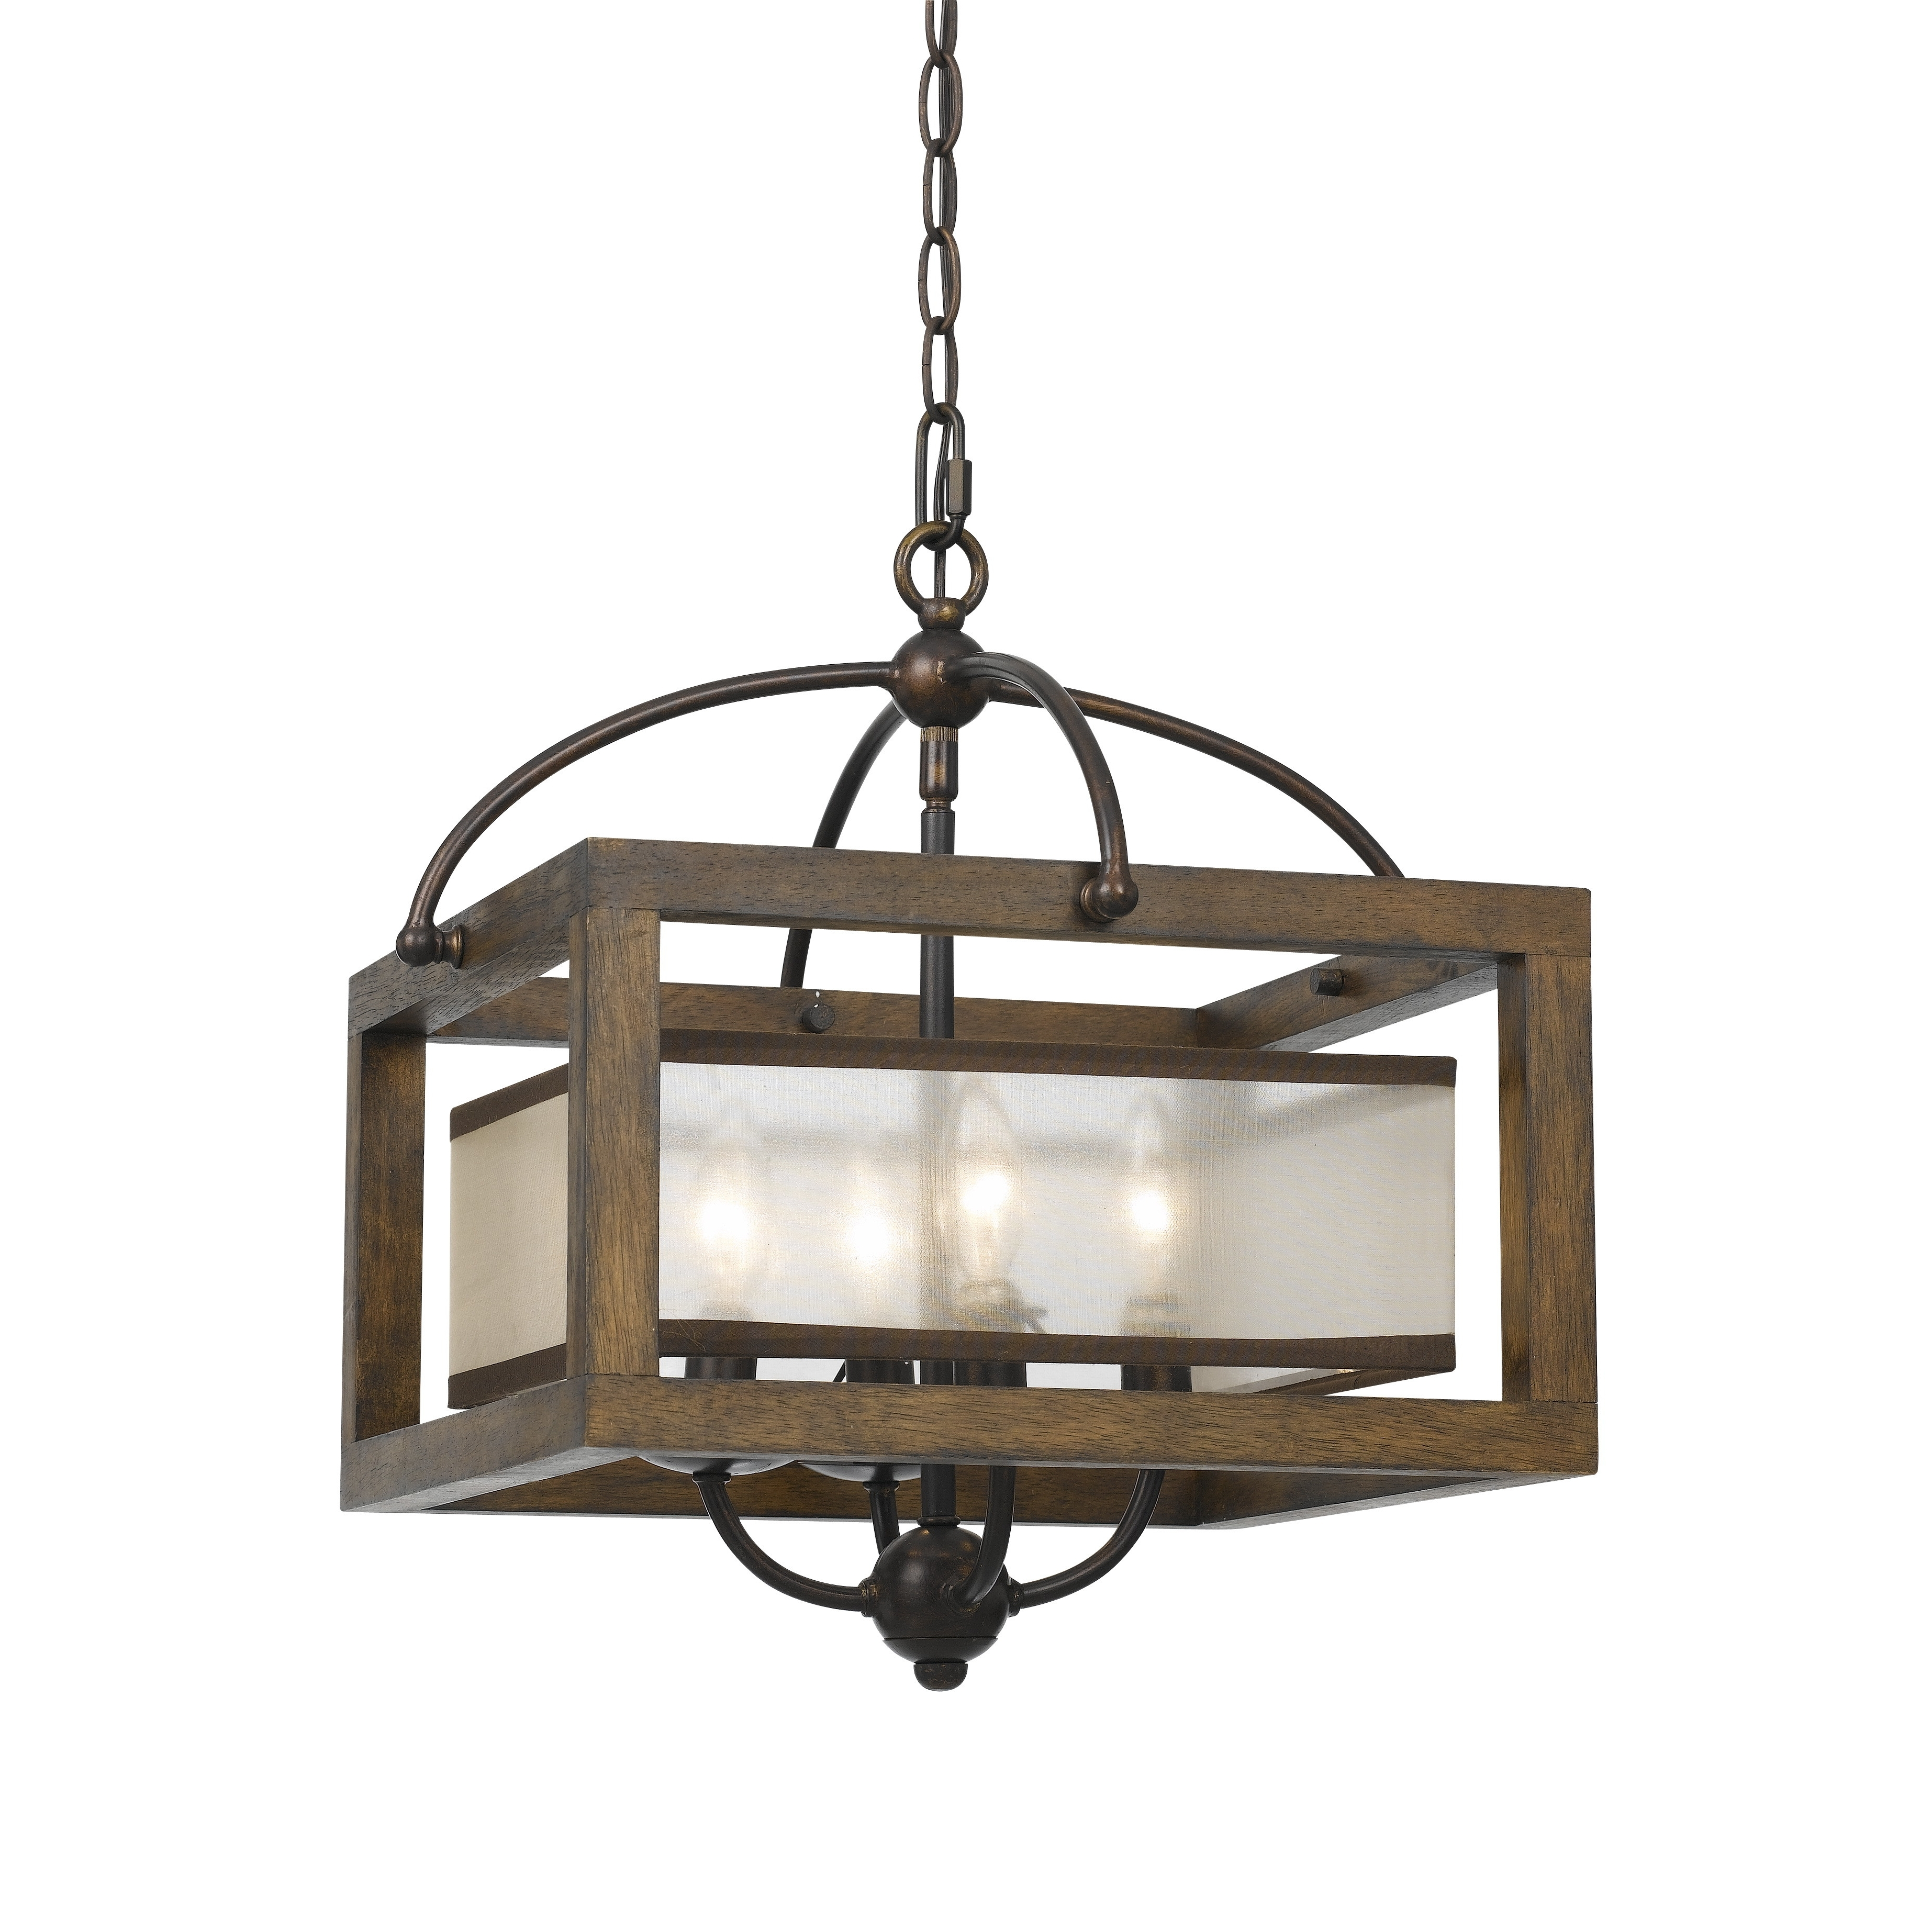 2019 Outdoor Hanging Lights Wayfair ~ Loversiq Regarding Wayfair Outdoor Hanging Lights (View 9 of 20)